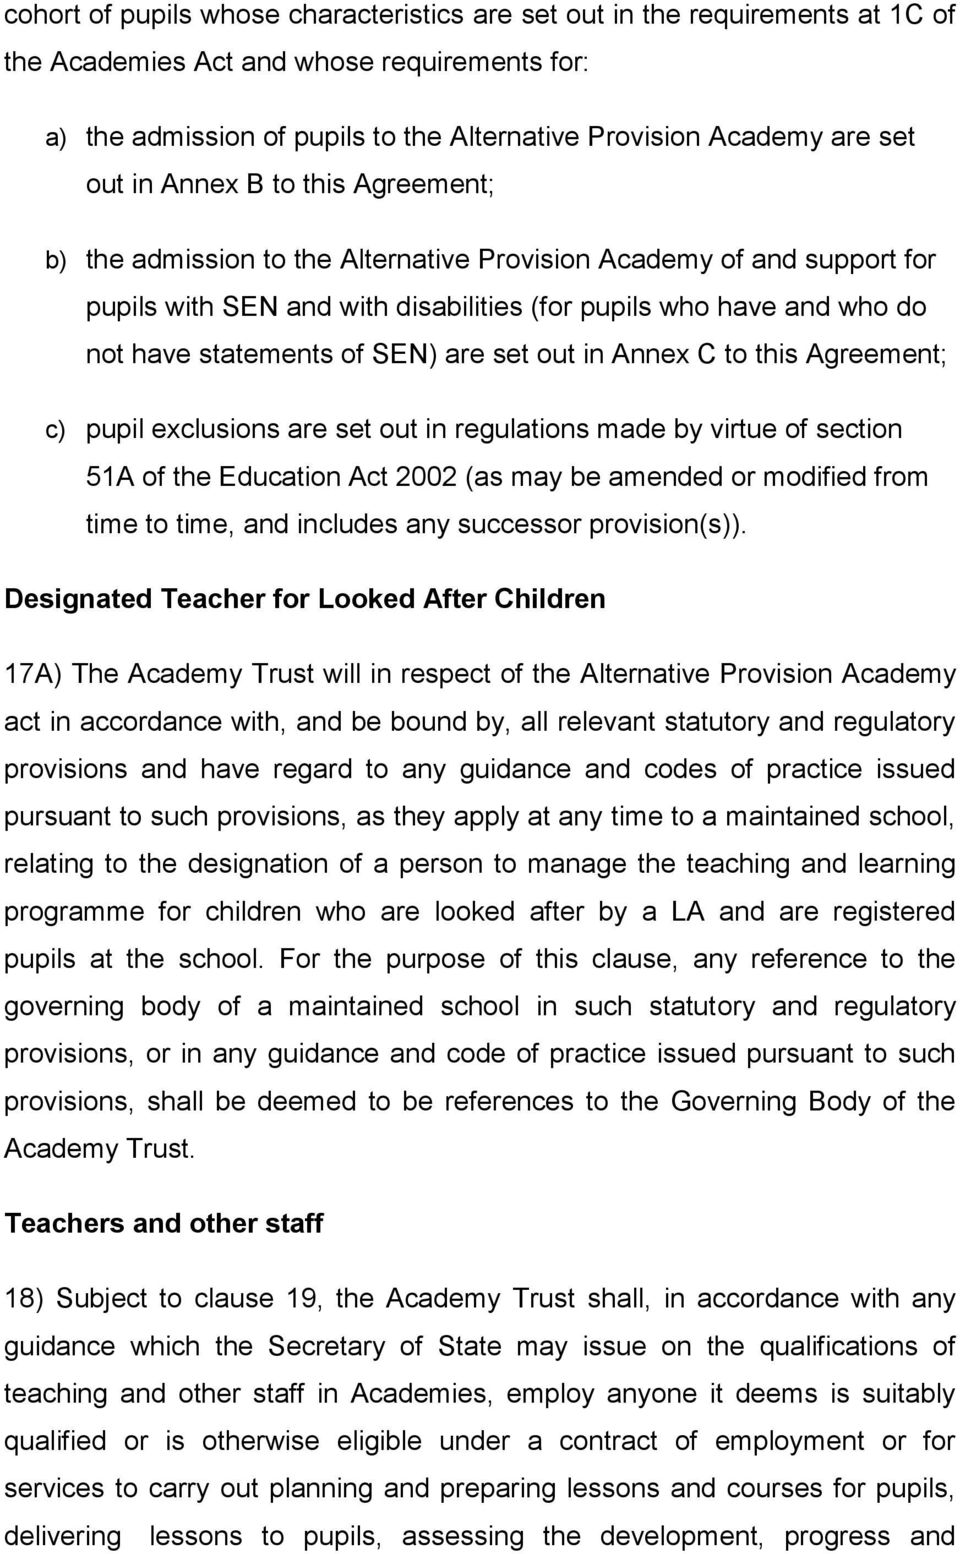 SEN) are set out in Annex C to this Agreement; c) pupil exclusions are set out in regulations made by virtue of section 51A of the Education Act 2002 (as may be amended or modified from time to time,